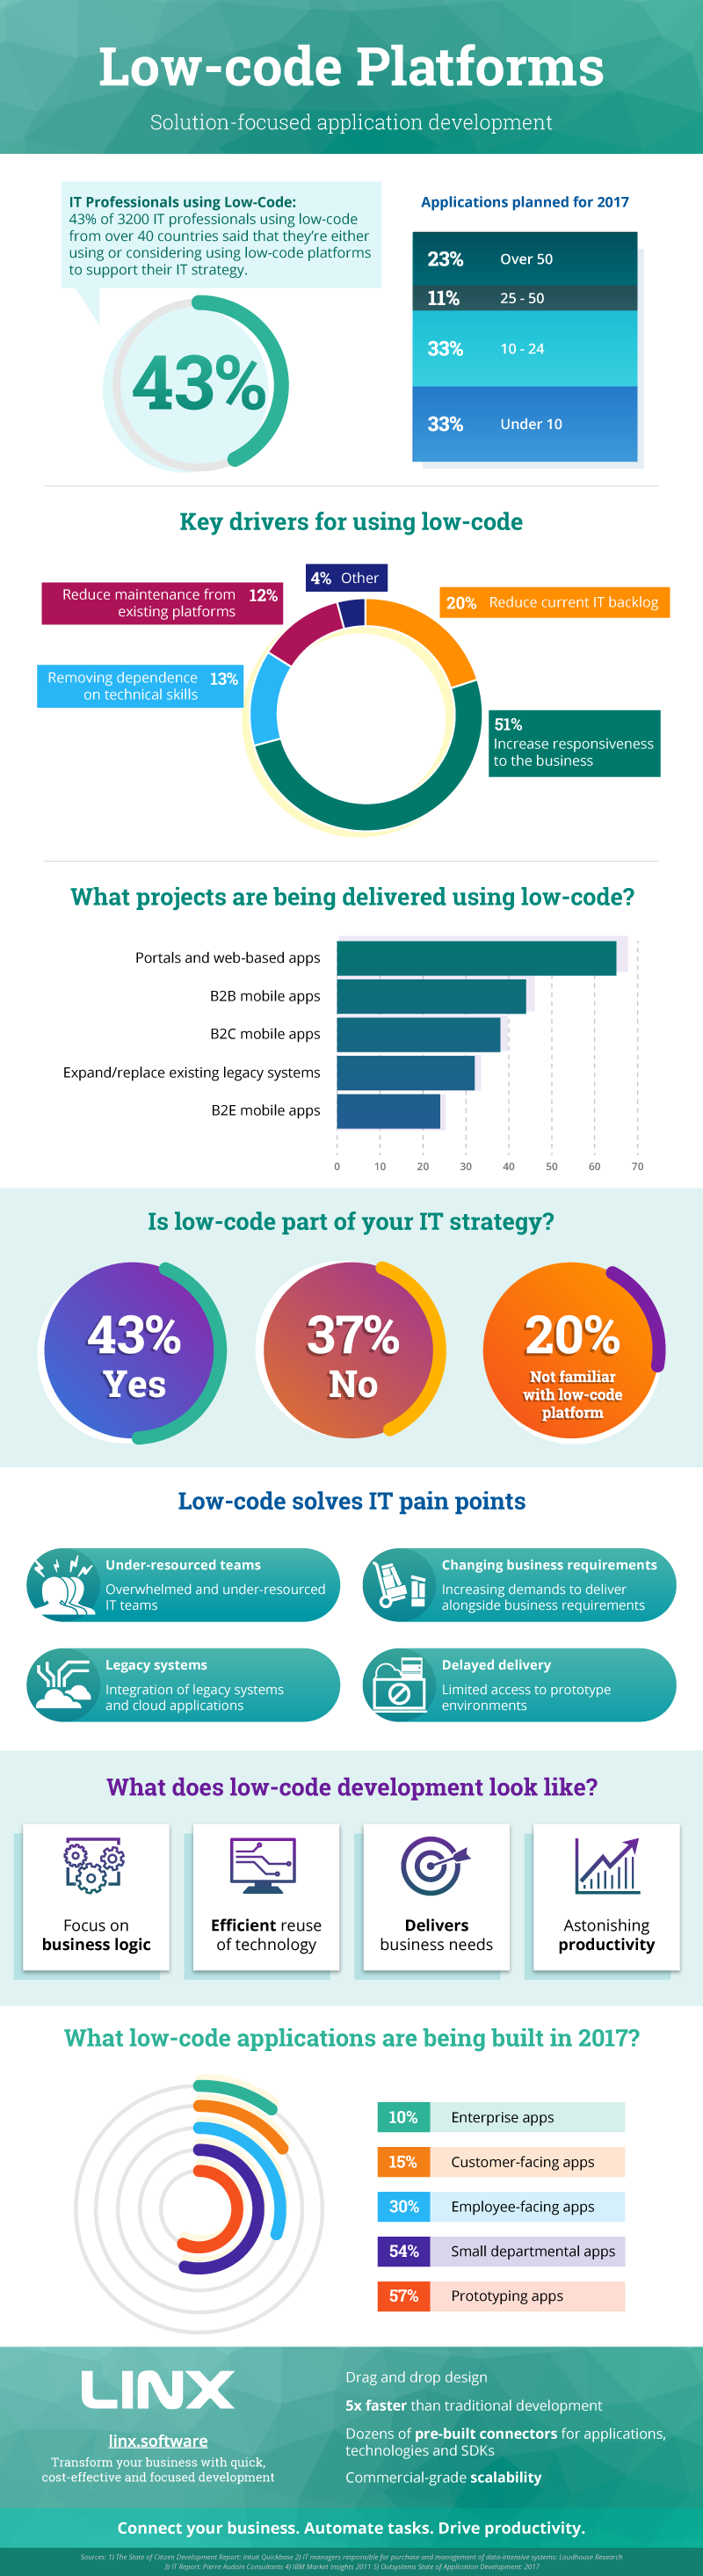 Infographic - Low-code platforms